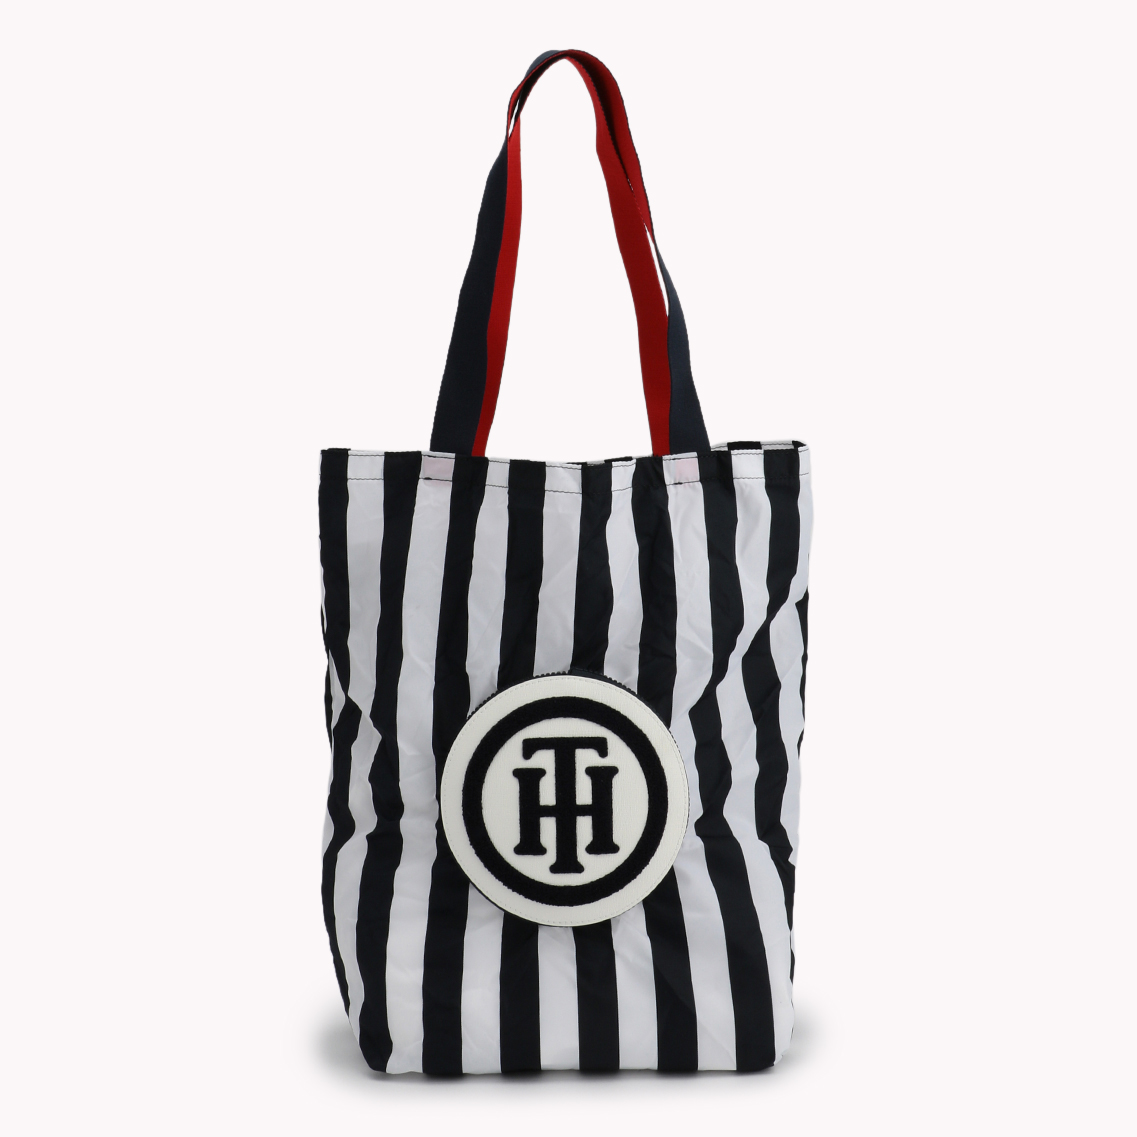 http://japan.tommy.com/ecp/img/product/AW0/AW0AW03996/AW0AW03996_pz_c902.jpg